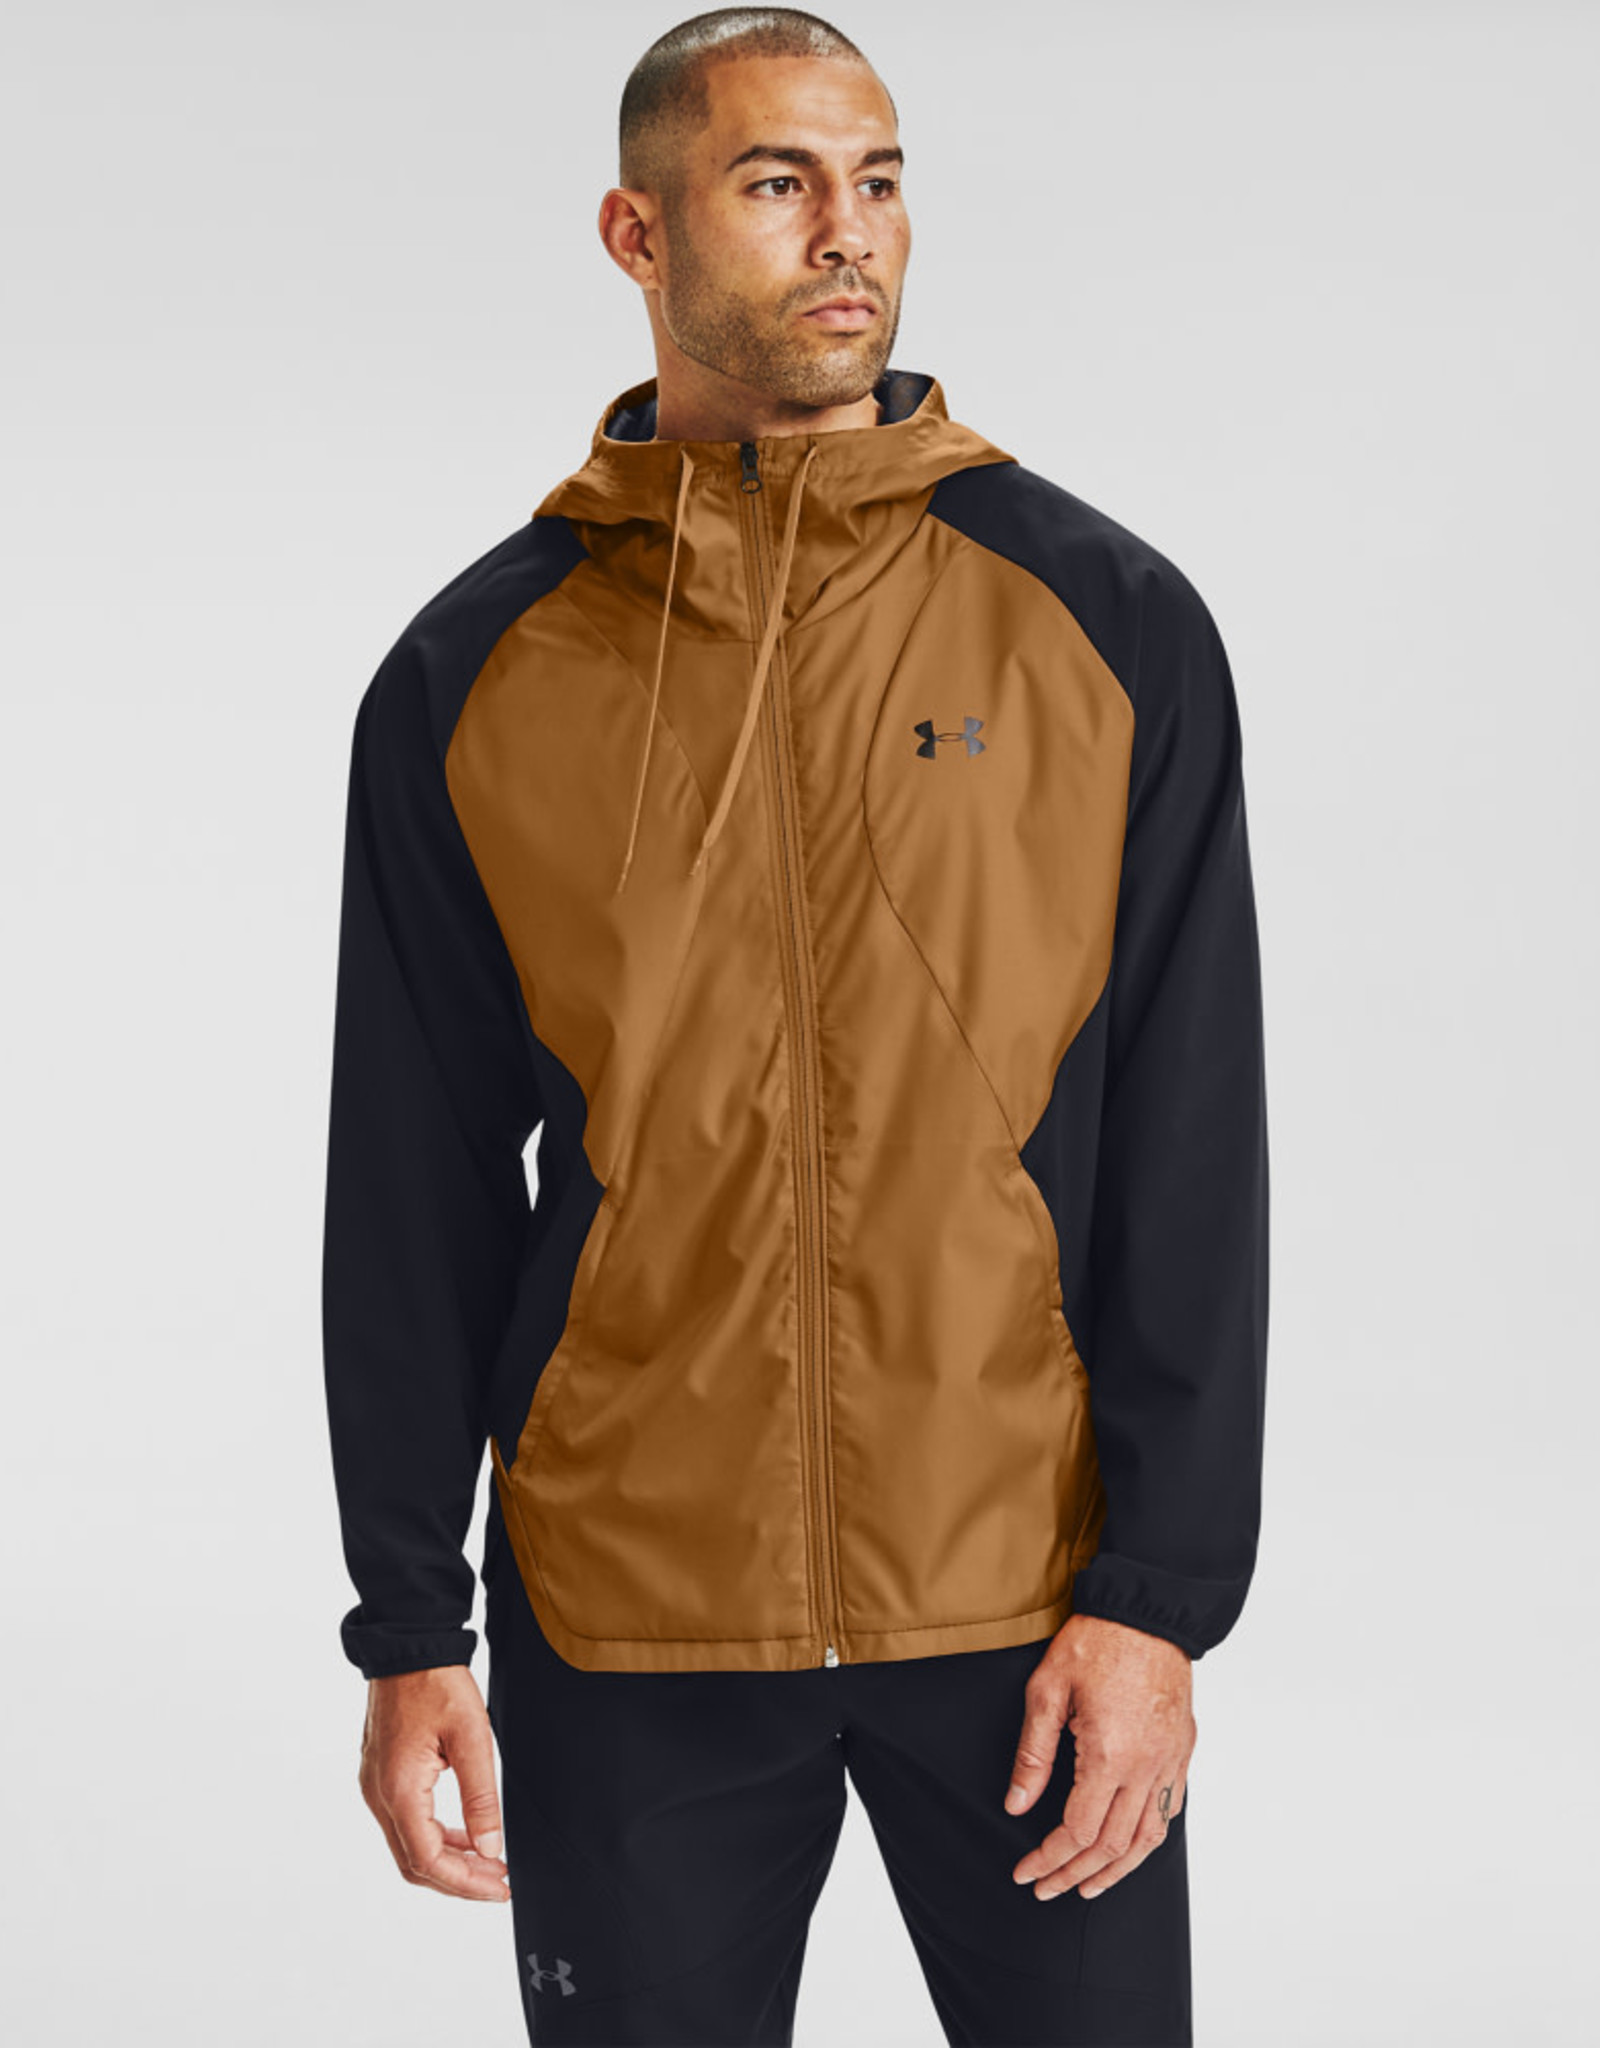 Under Armour STRETCH-WOVEN HOODED JACKET - Black-Yellow Ochre-Black